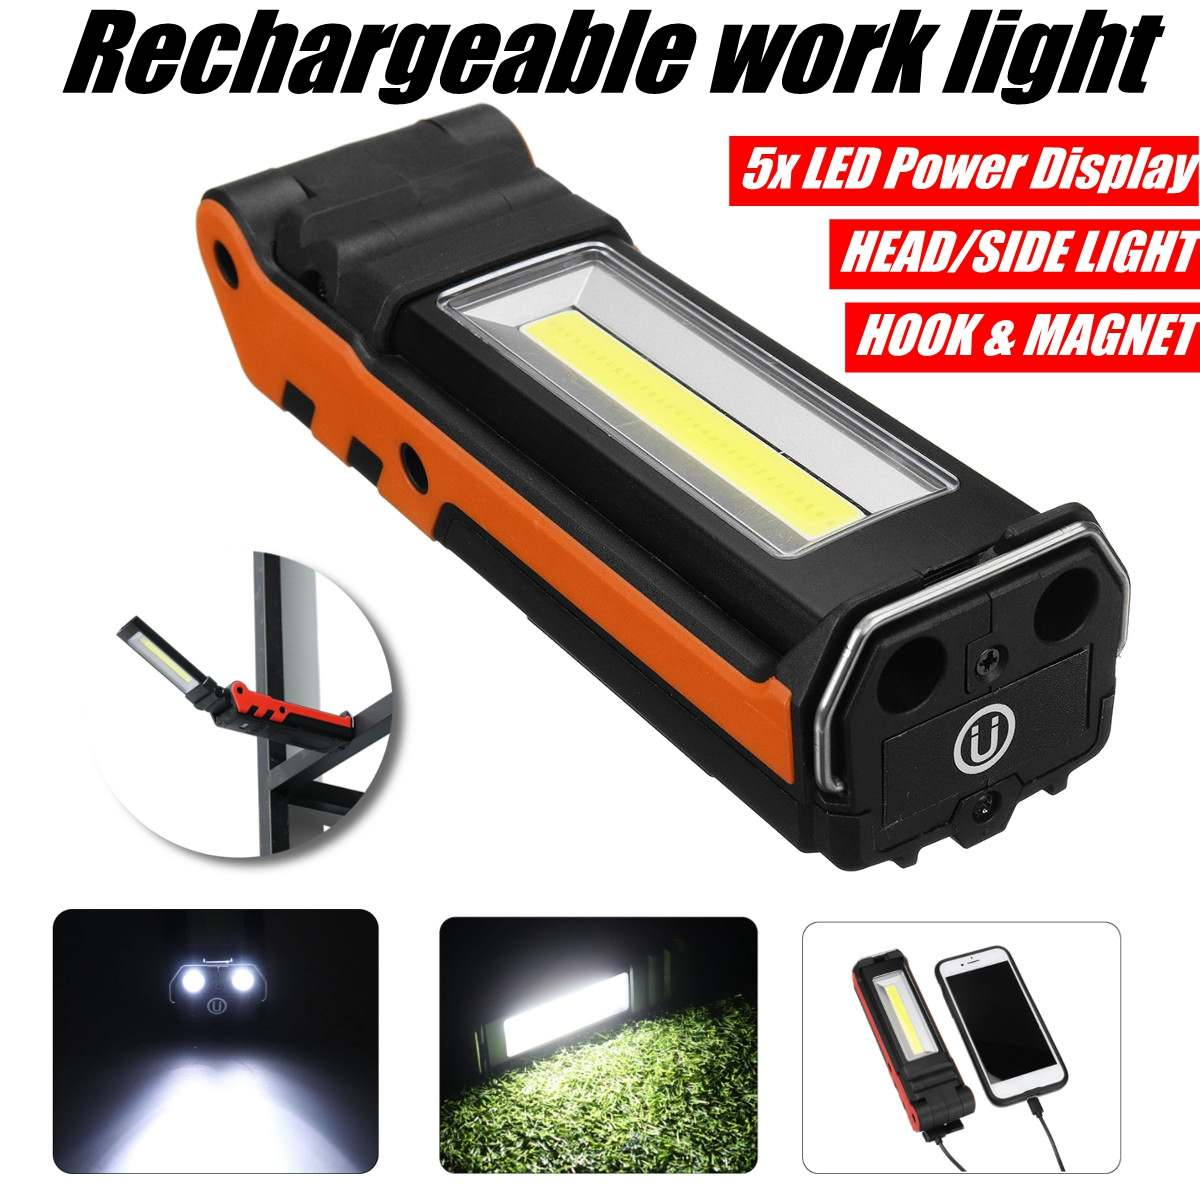 USB Rechargeable COB LED Work Light Dimmable Flashlight Magnetic Inspection Lamp with Hook Power Bank 2000mAh 18650 Battery image